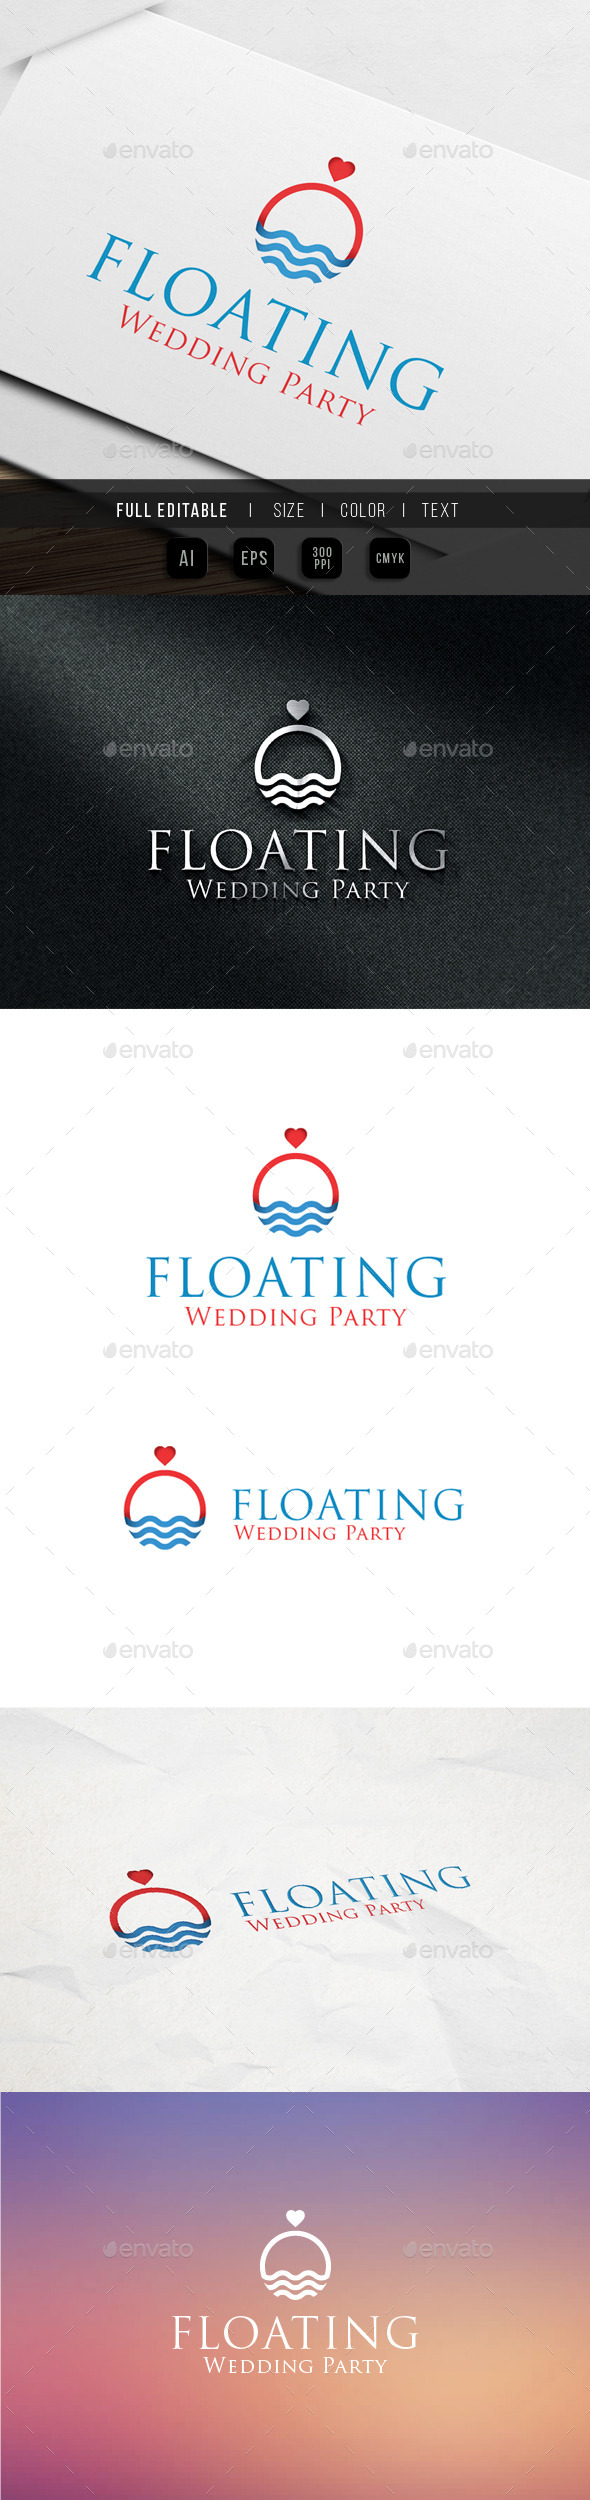 Floating - Wedding Events & Party - Abstract Logo Templates